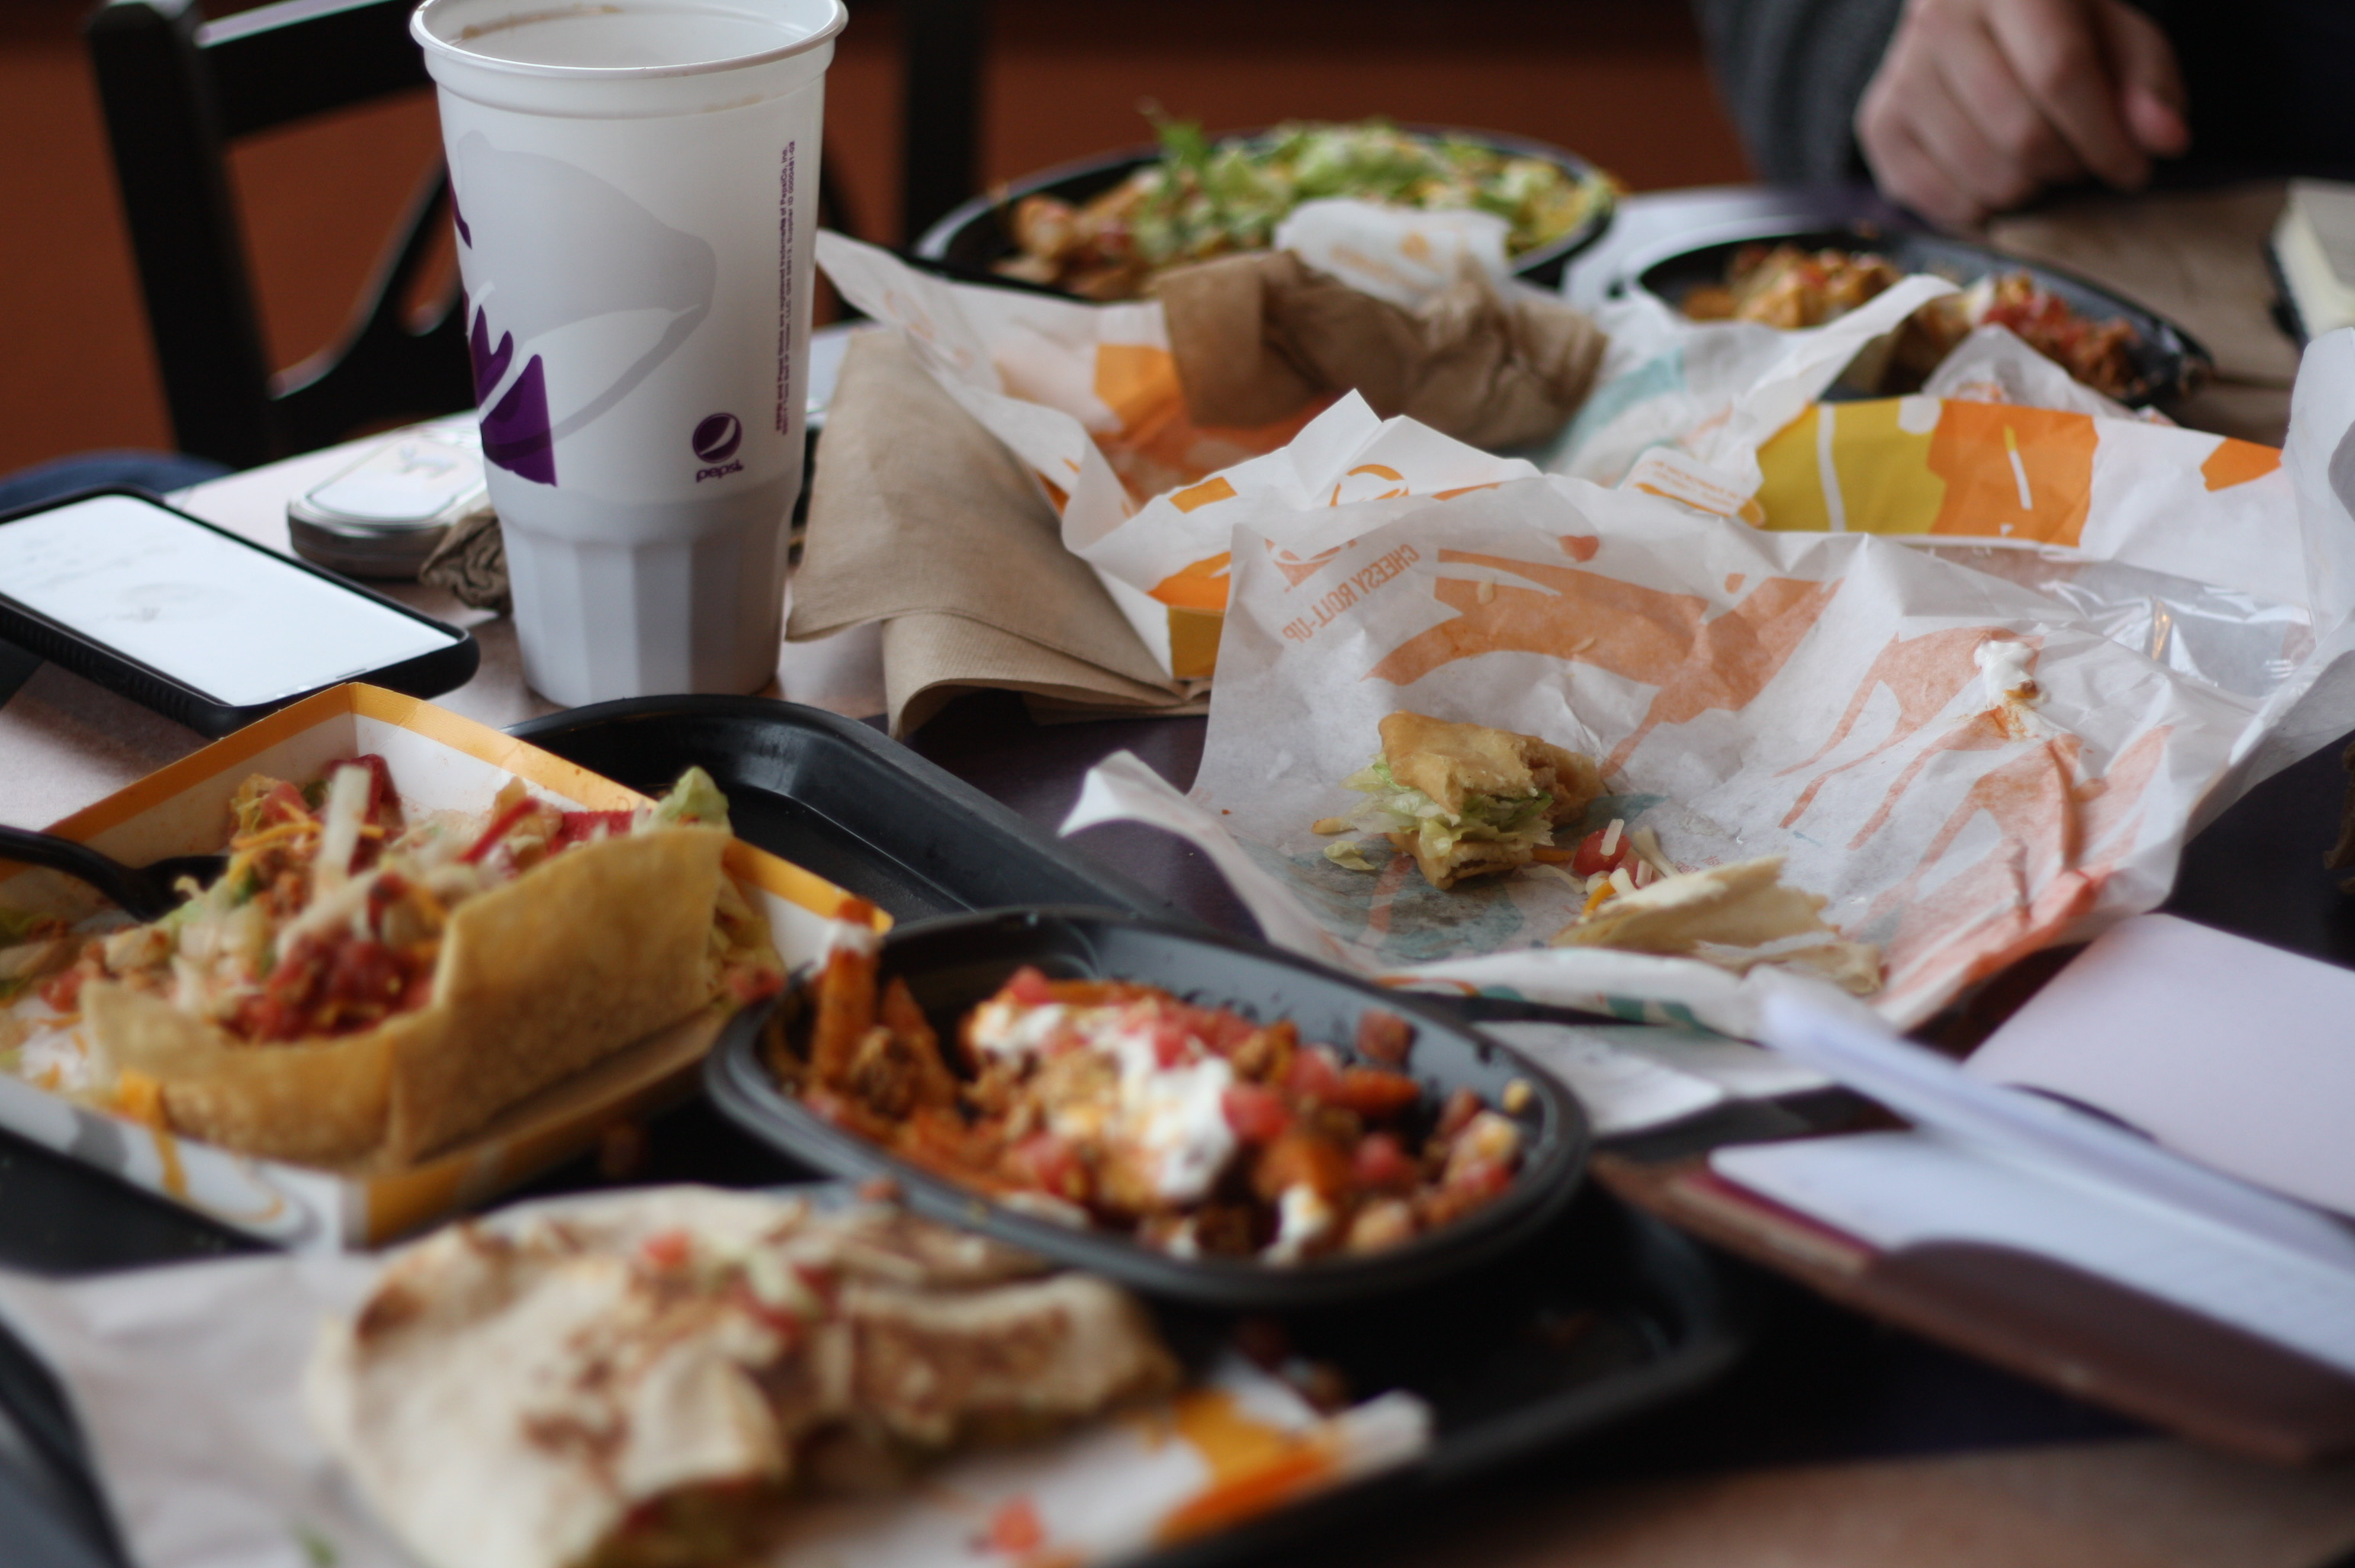 The Best and Worst Menu Items at Jack in the Box pictures